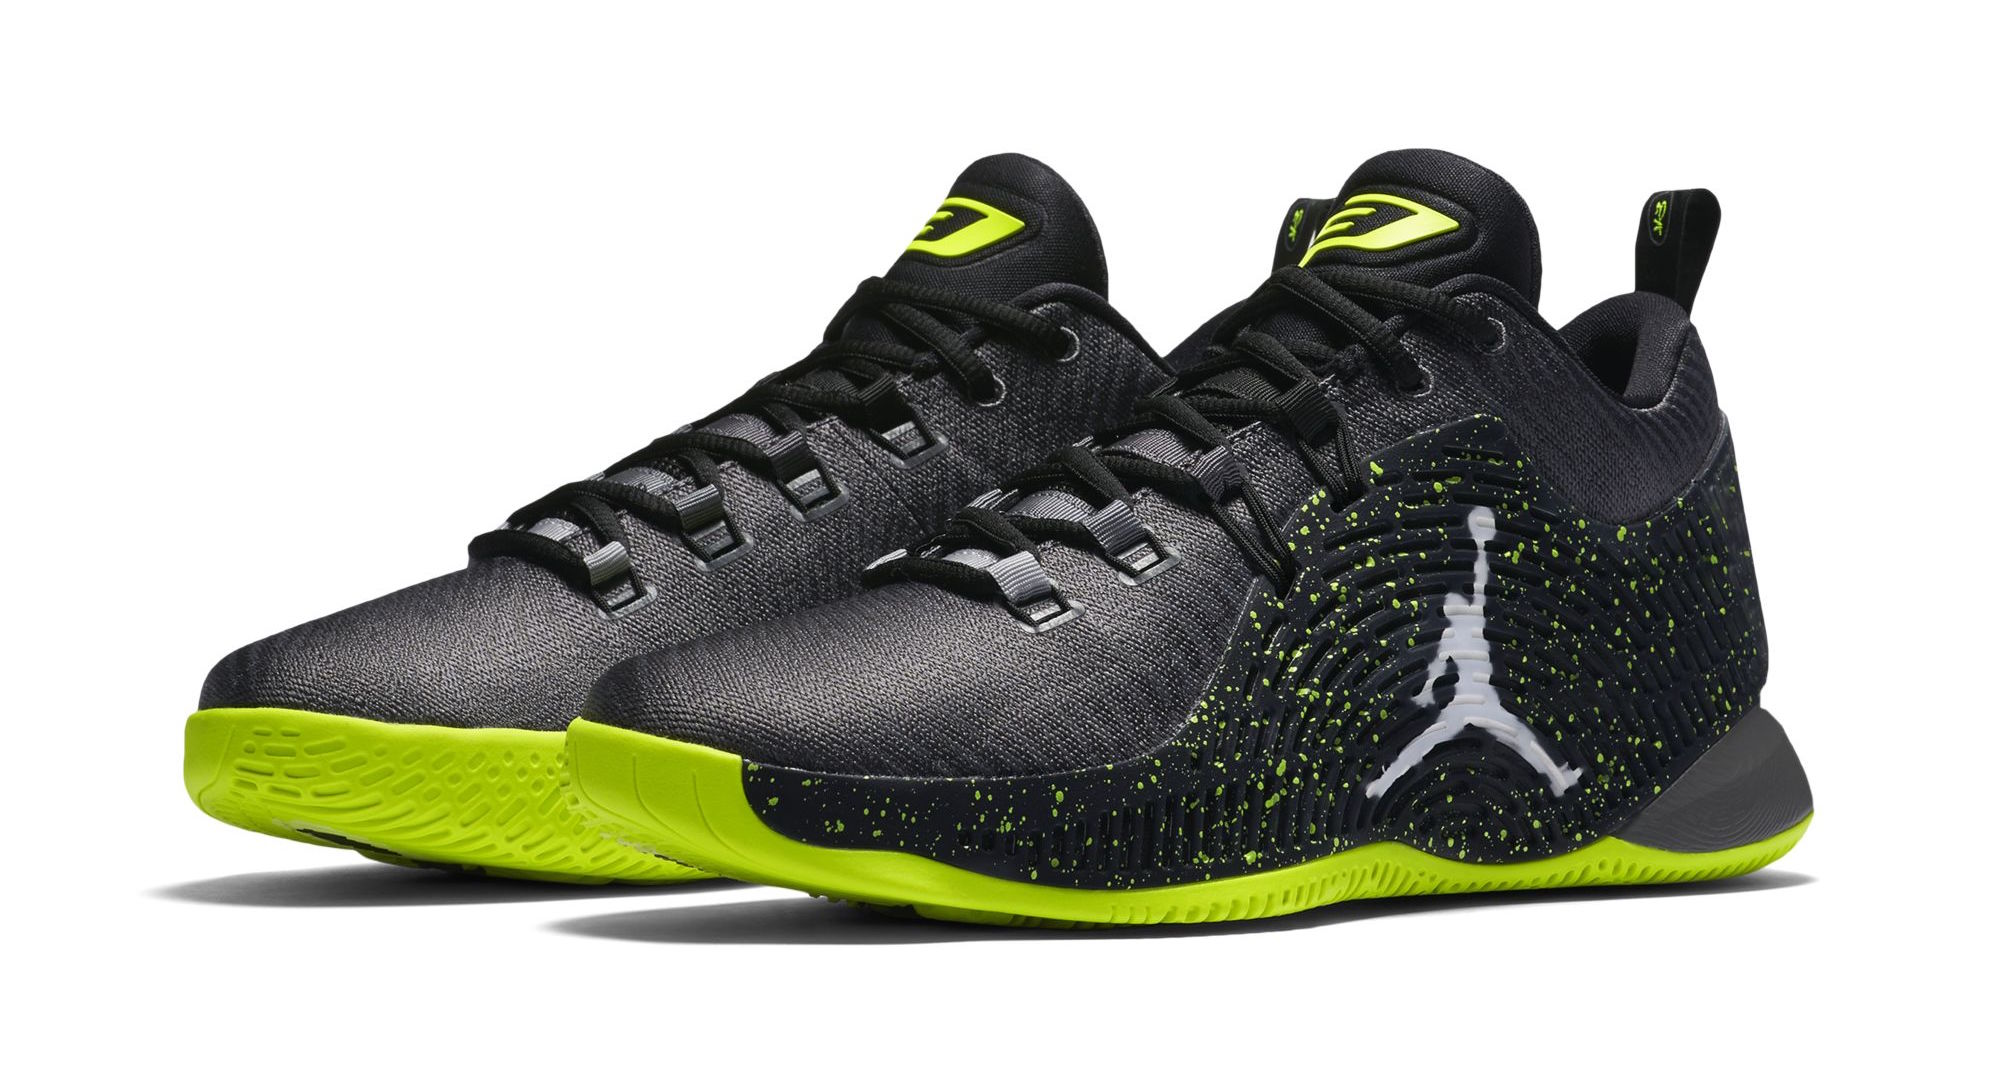 CP3.X New Colorways 2